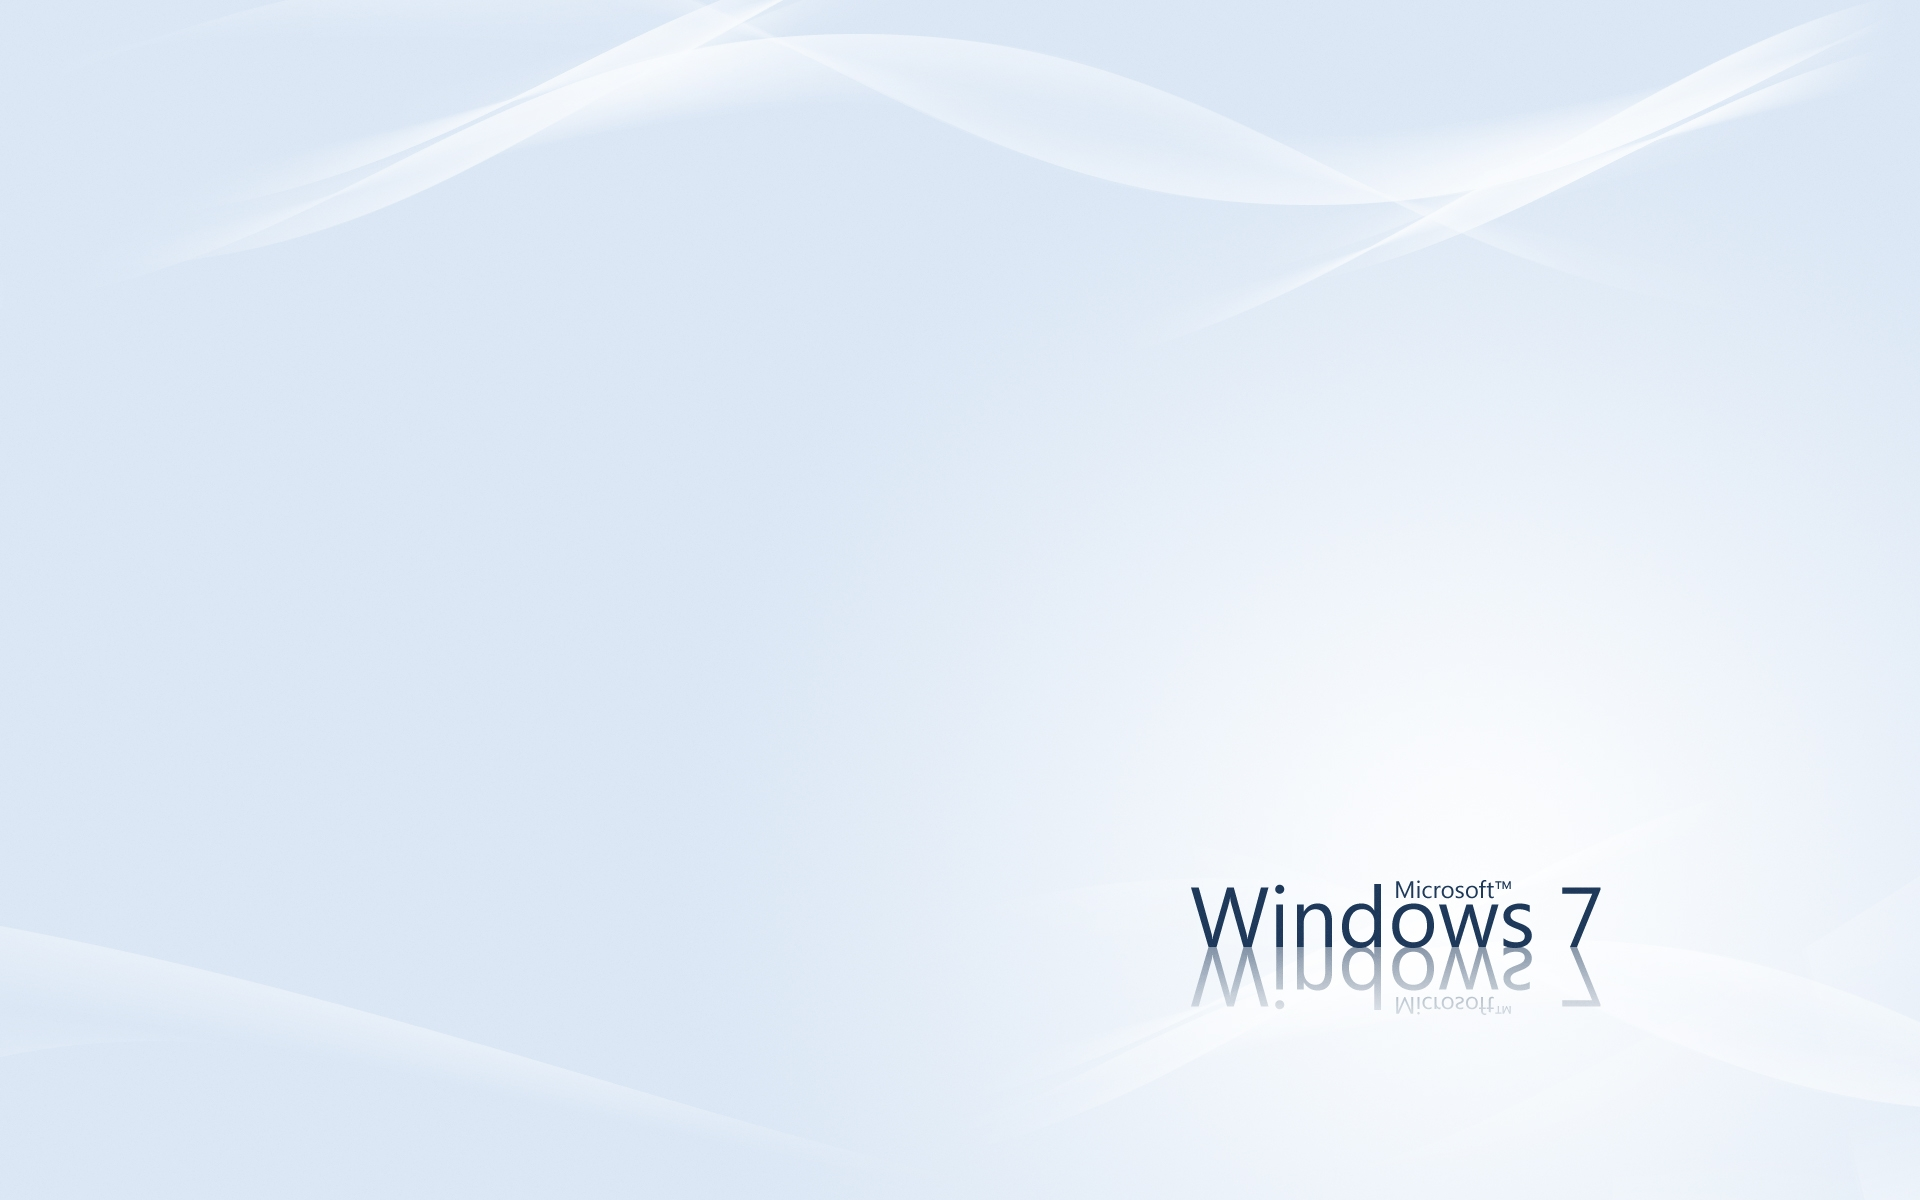 Windows Bright Wallpaper Cool Wallpapers Hd Hdwallsources